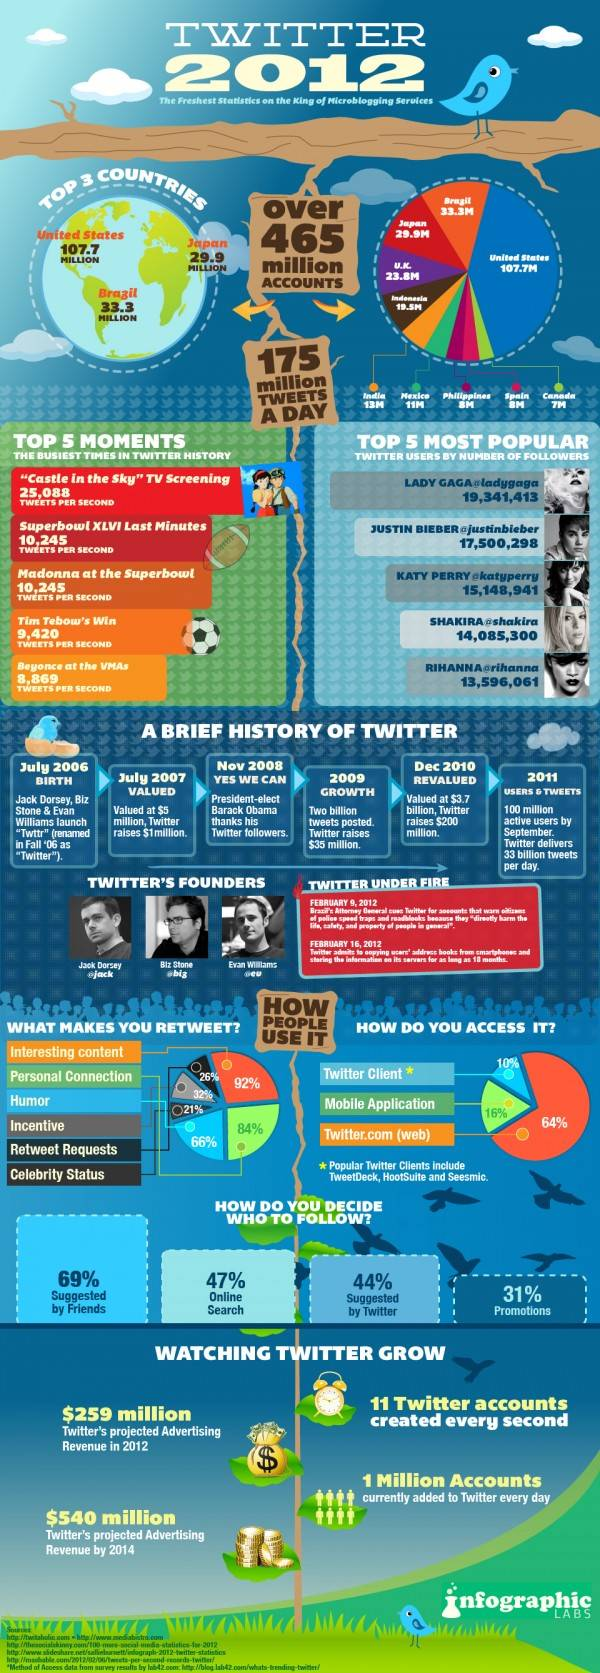 Infographie Twitter 2012